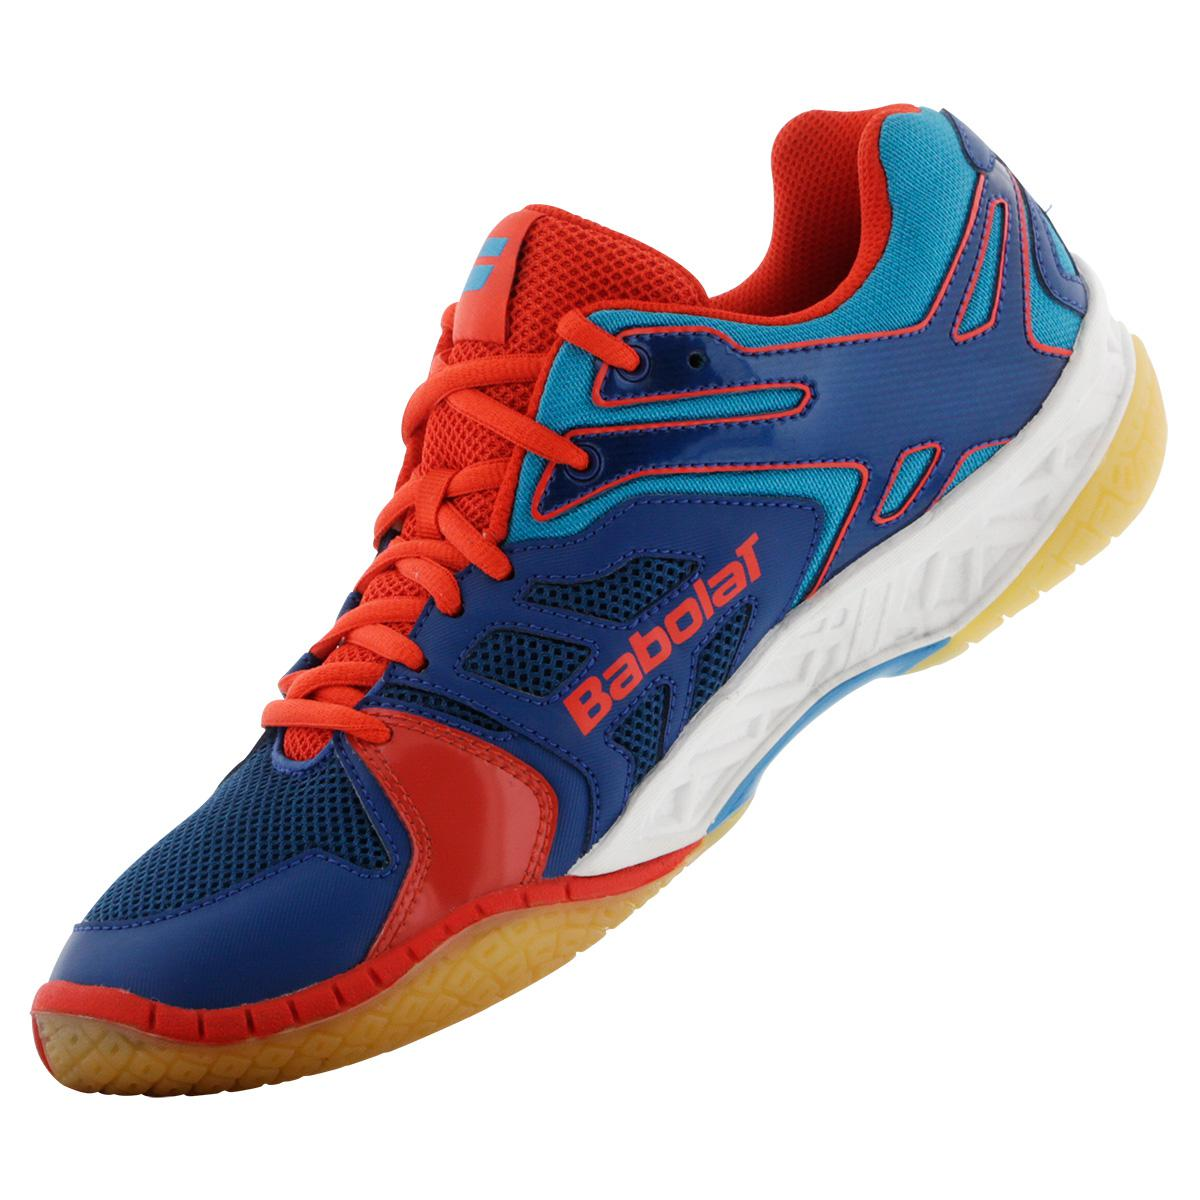 Babolat Red Shoes